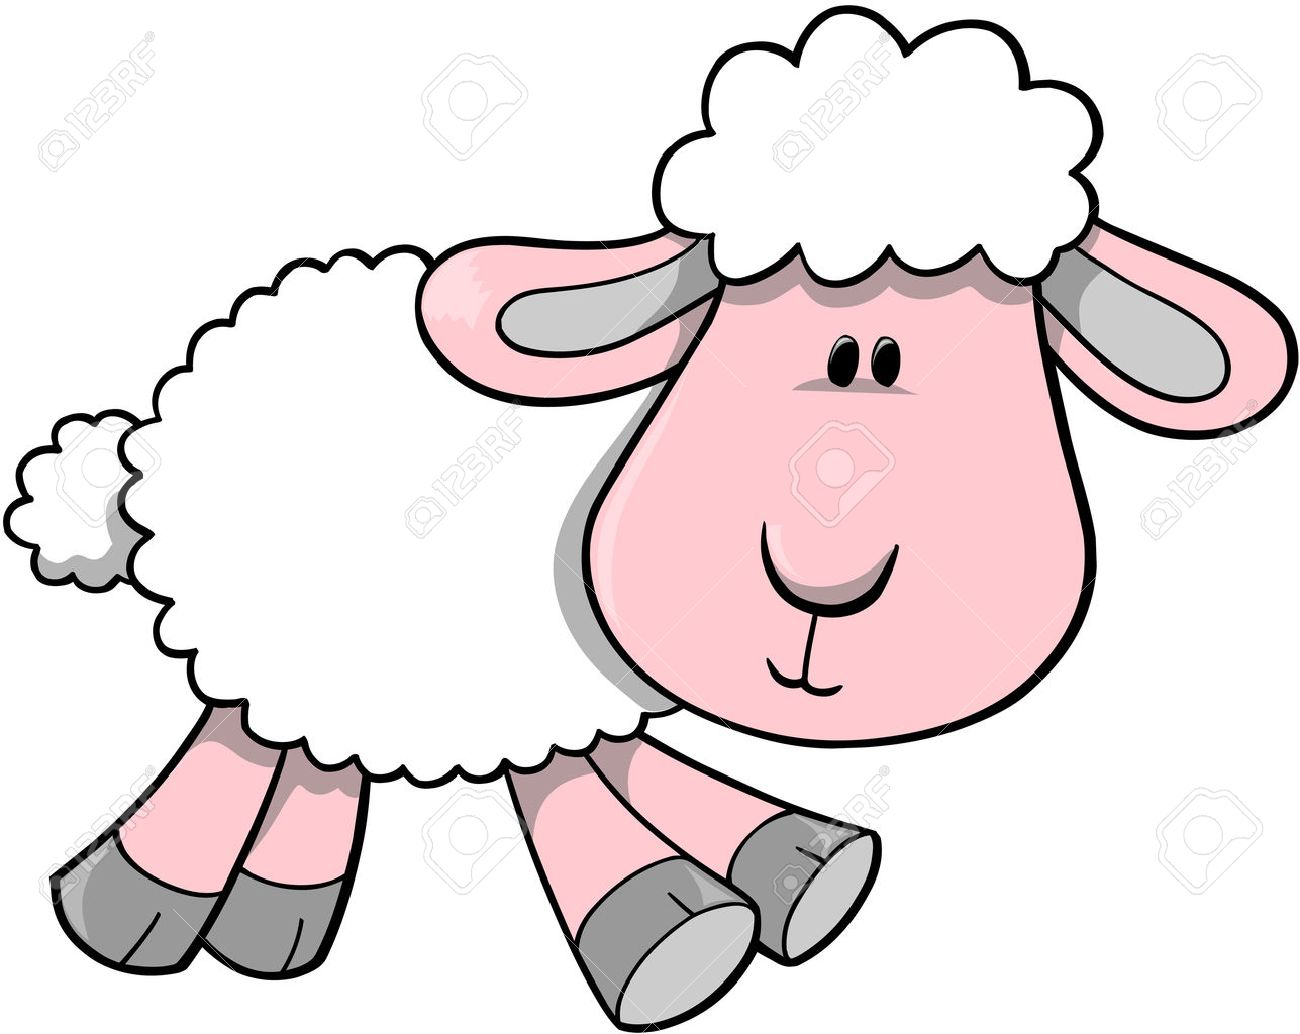 Lamb Vector Illustration Stock Vector - 2046619